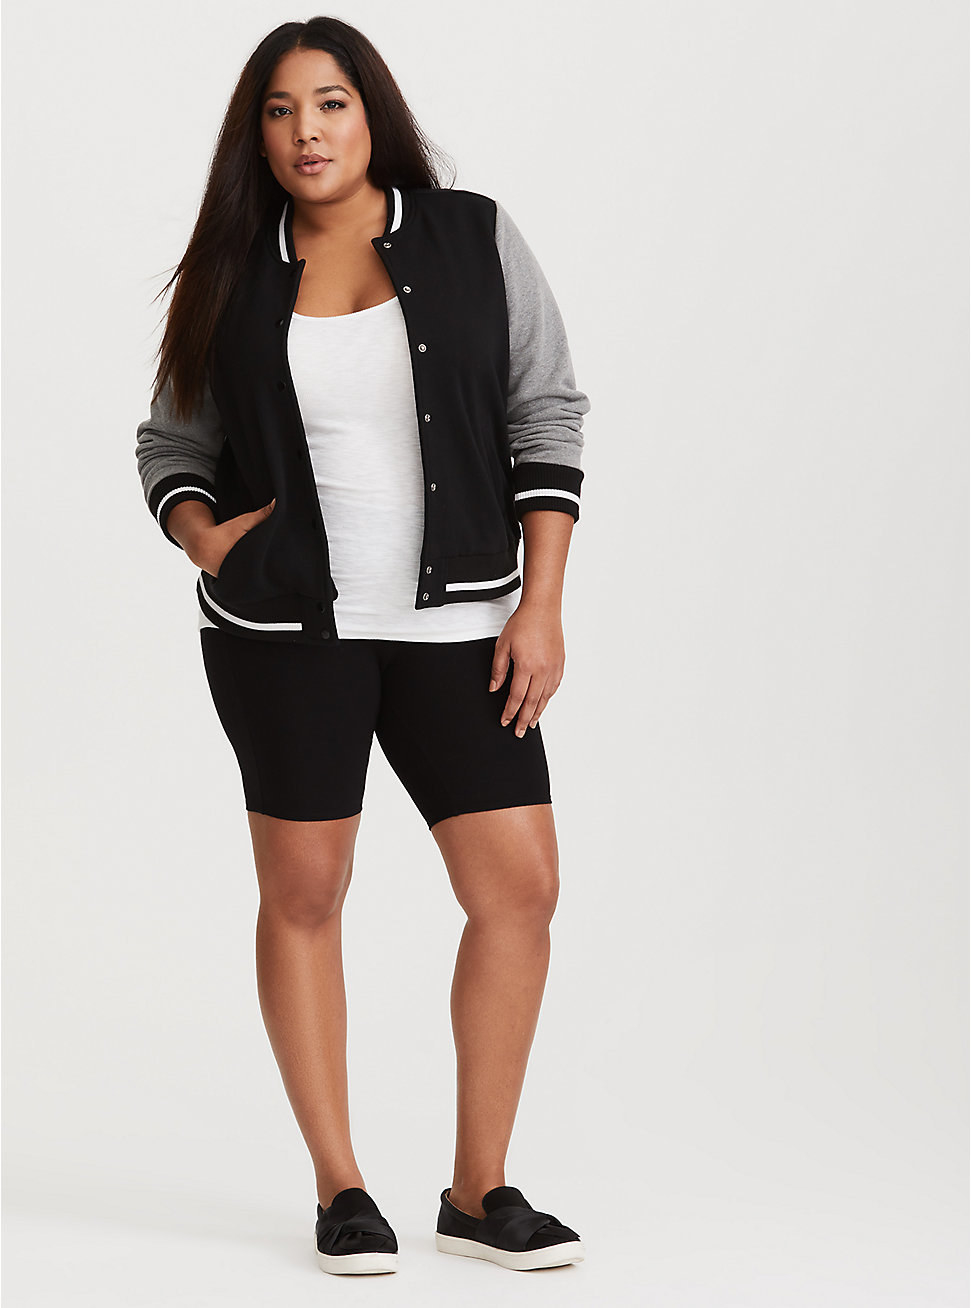 A model in the shorts, which come about 4 inches above the knee